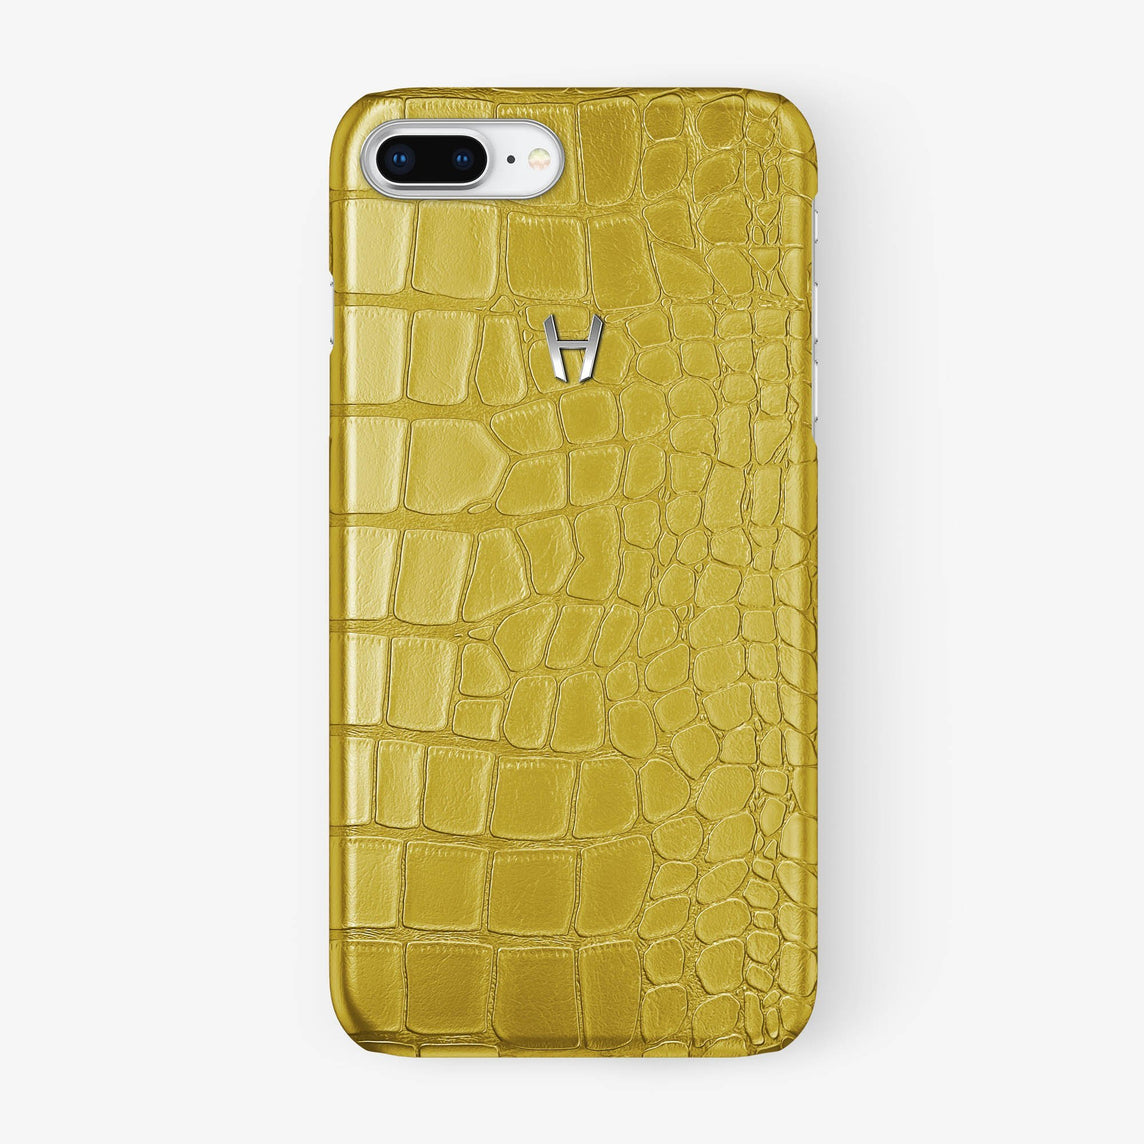 Alligator Case iPhone 7/8 Plus | Yellow - Stainless Steel - Hadoro